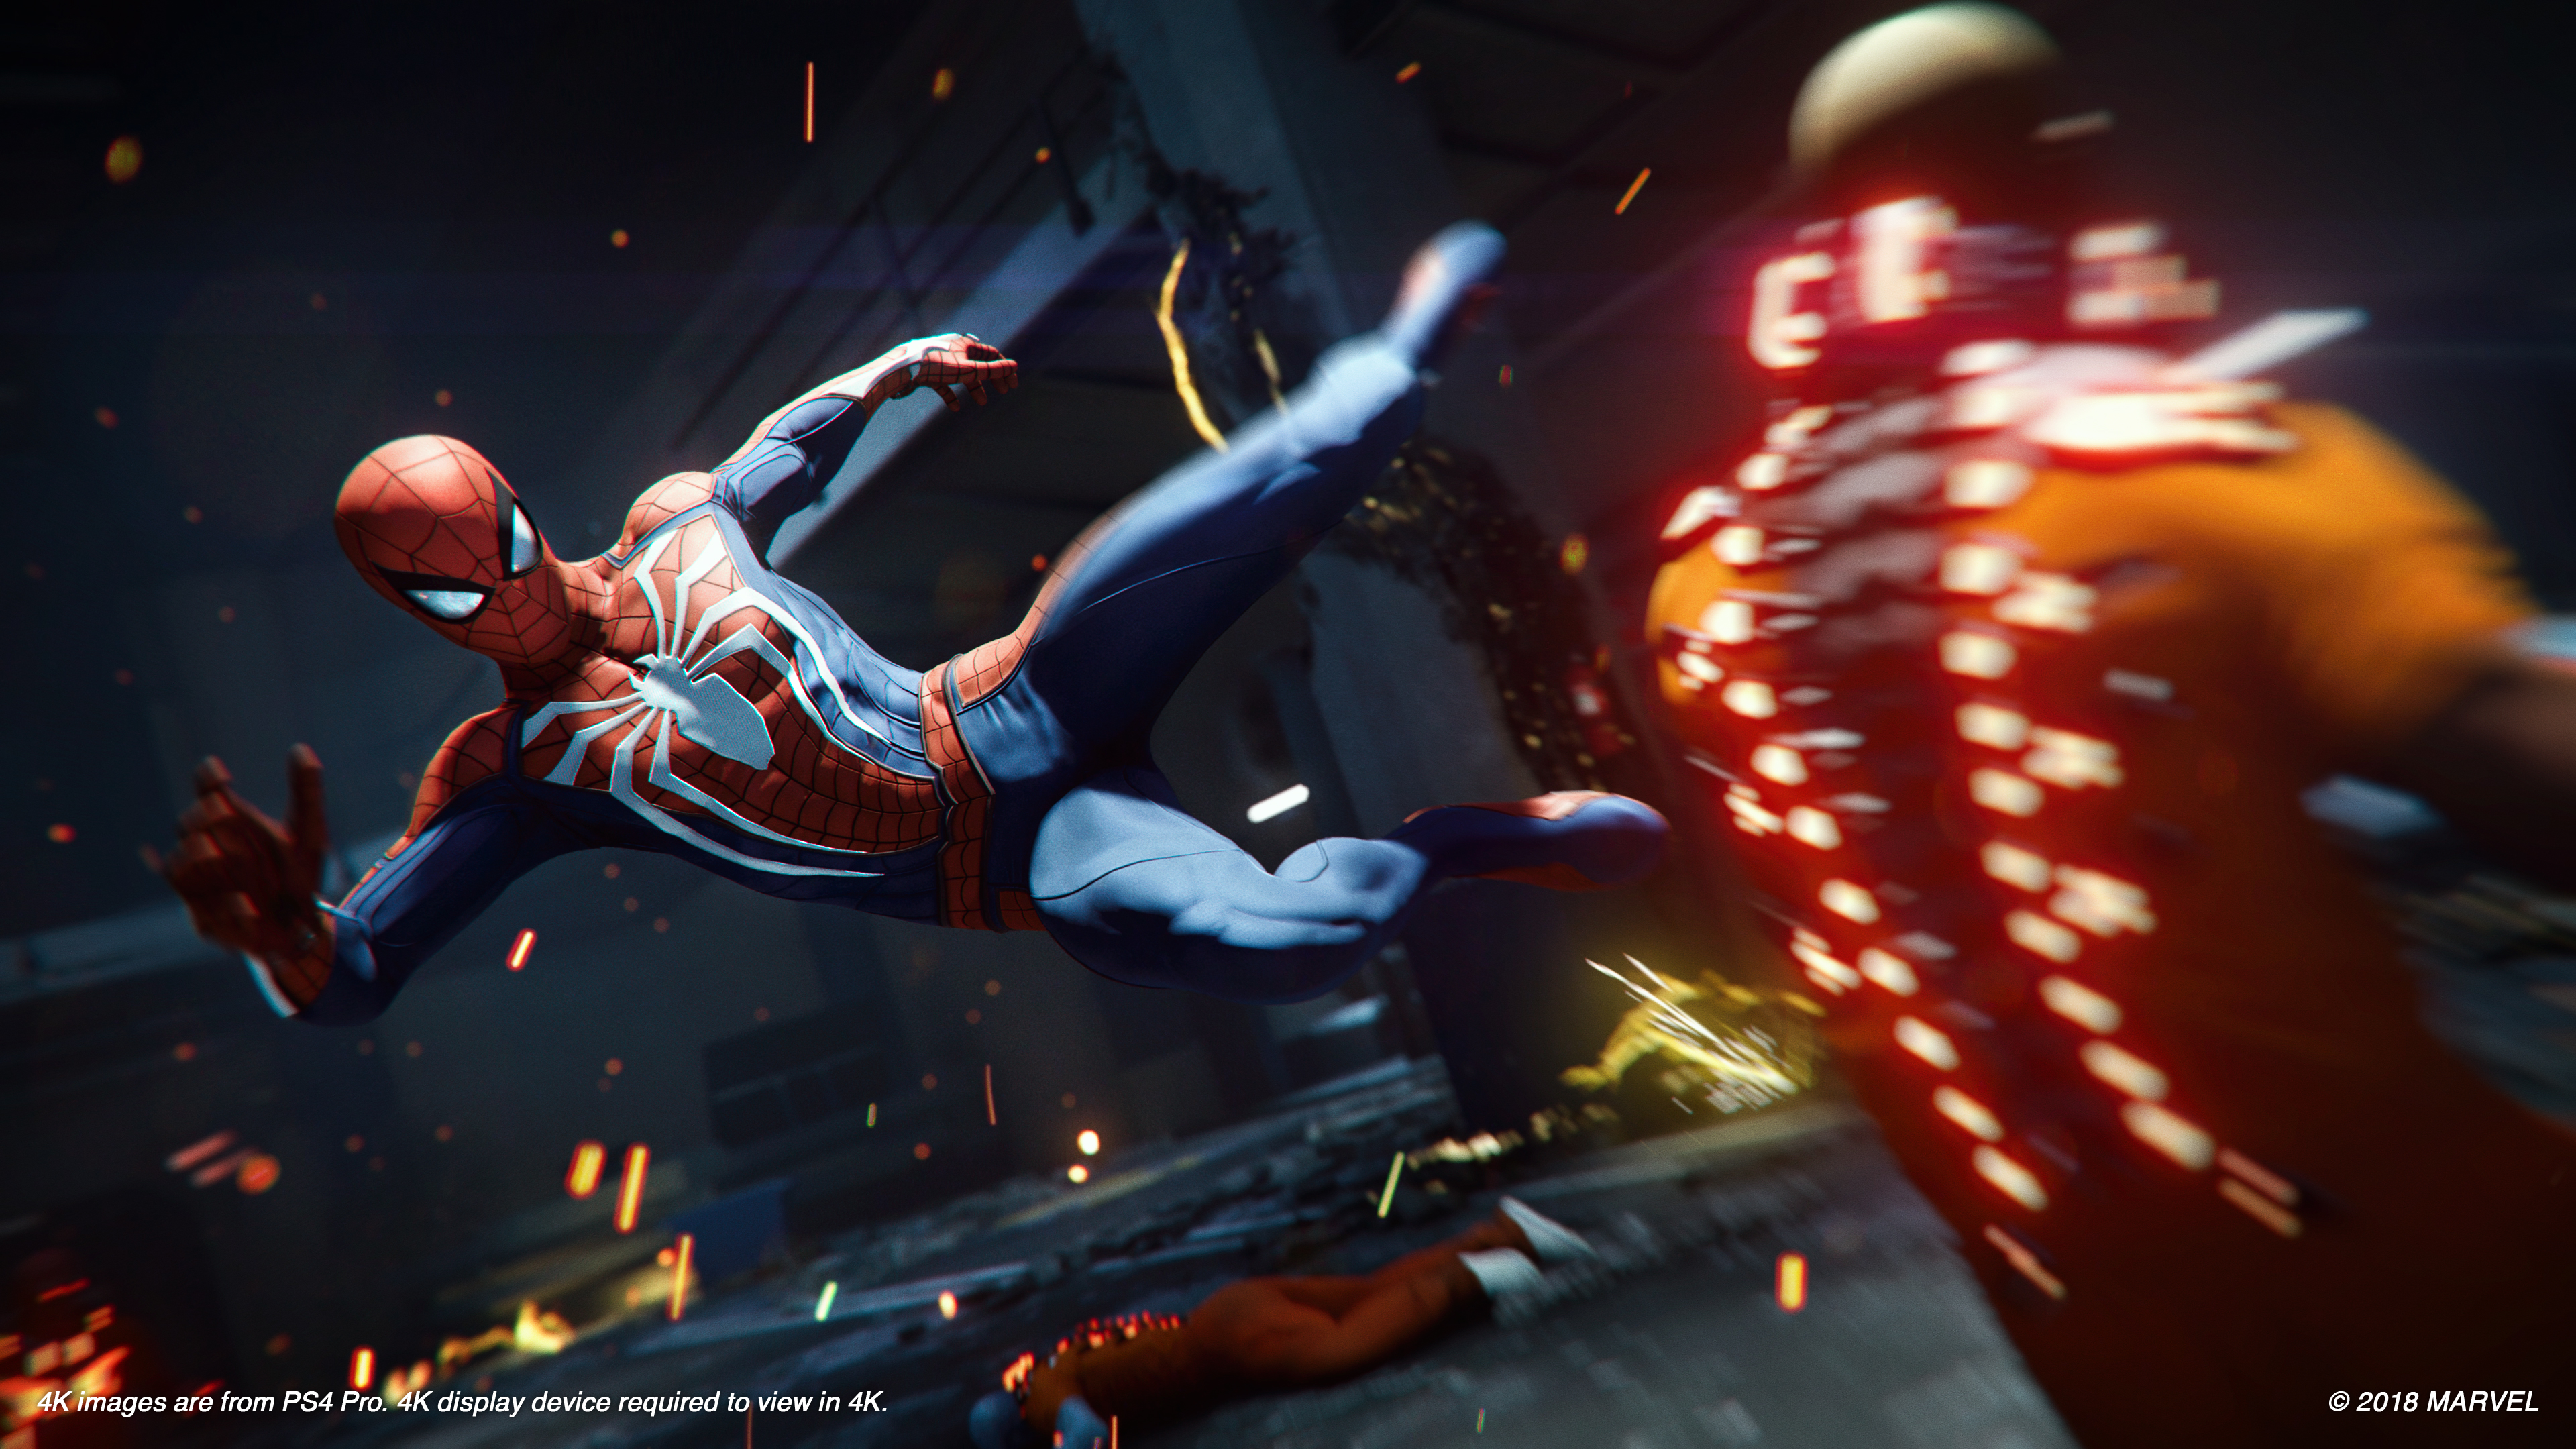 Spider Man Ps4 All Backpacks Suit - Restaurant Grotto Ticino